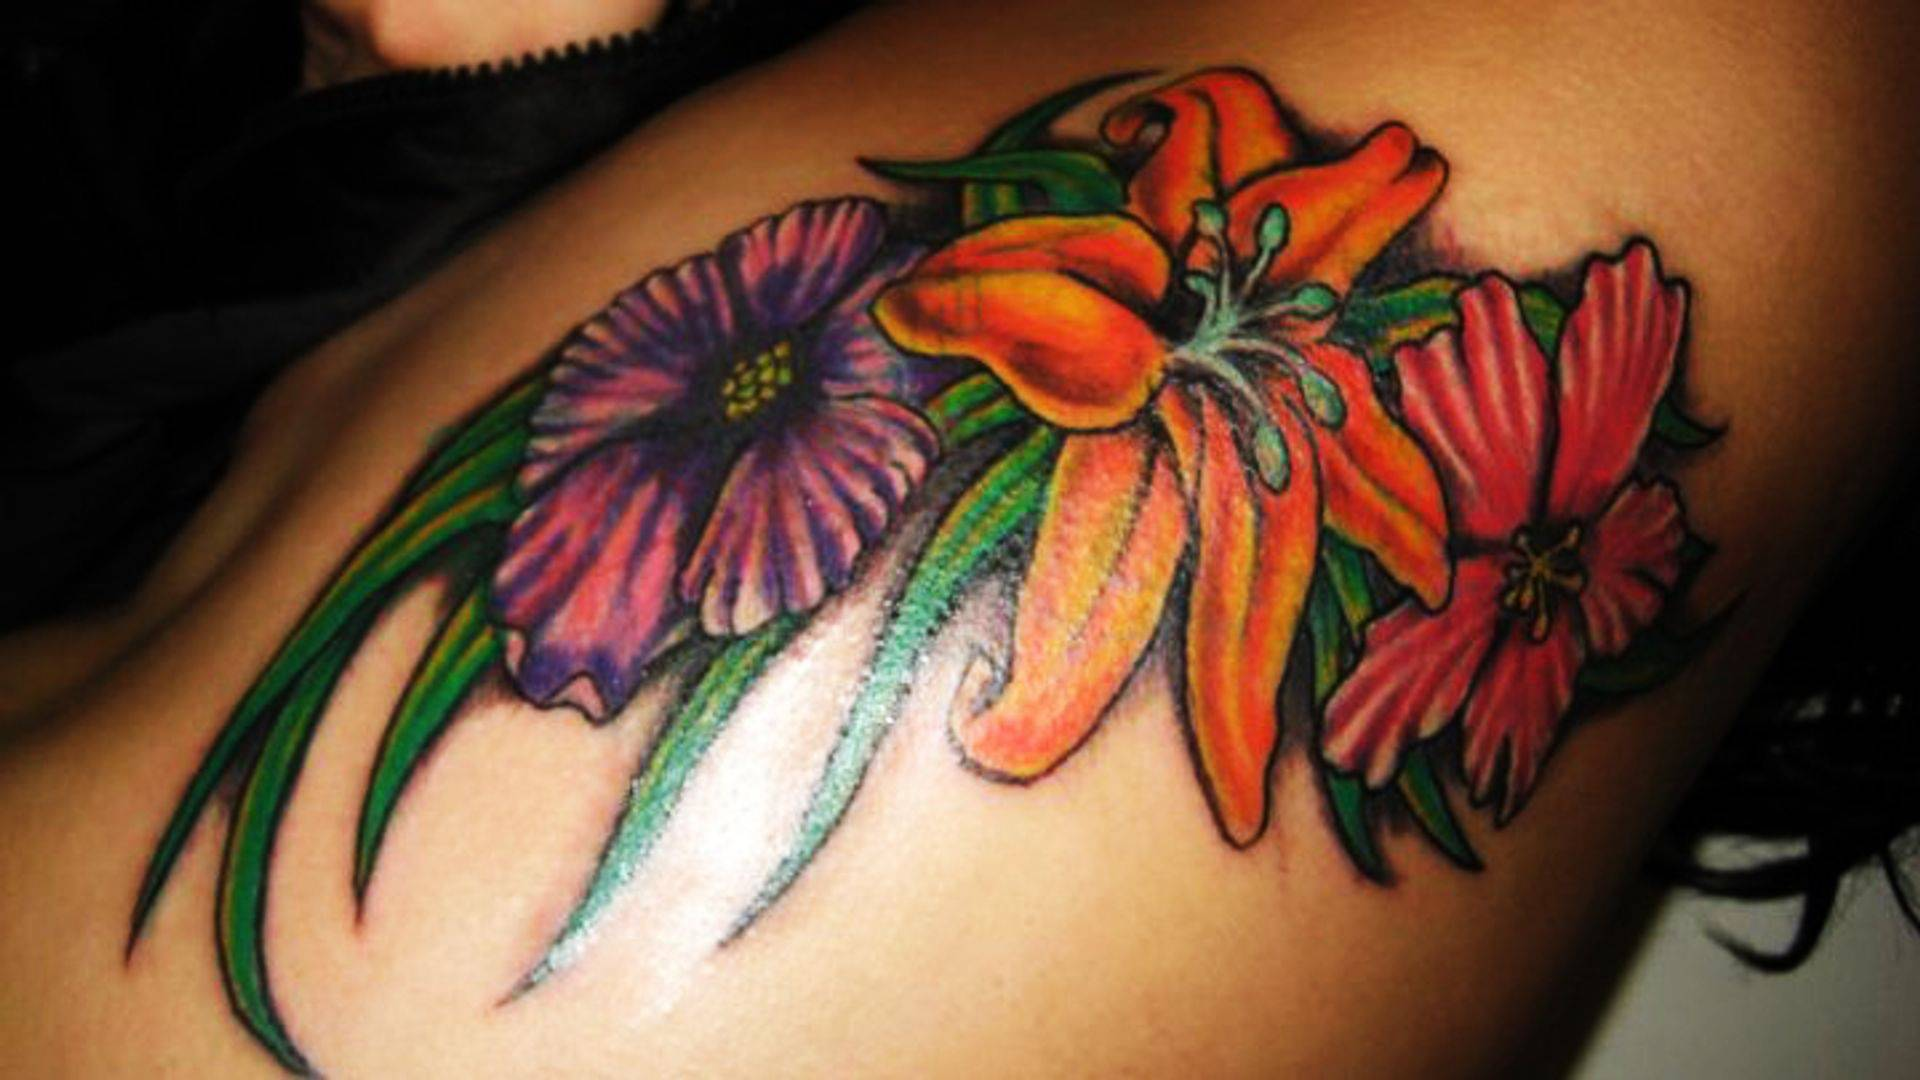 Flowers cover up tattoo